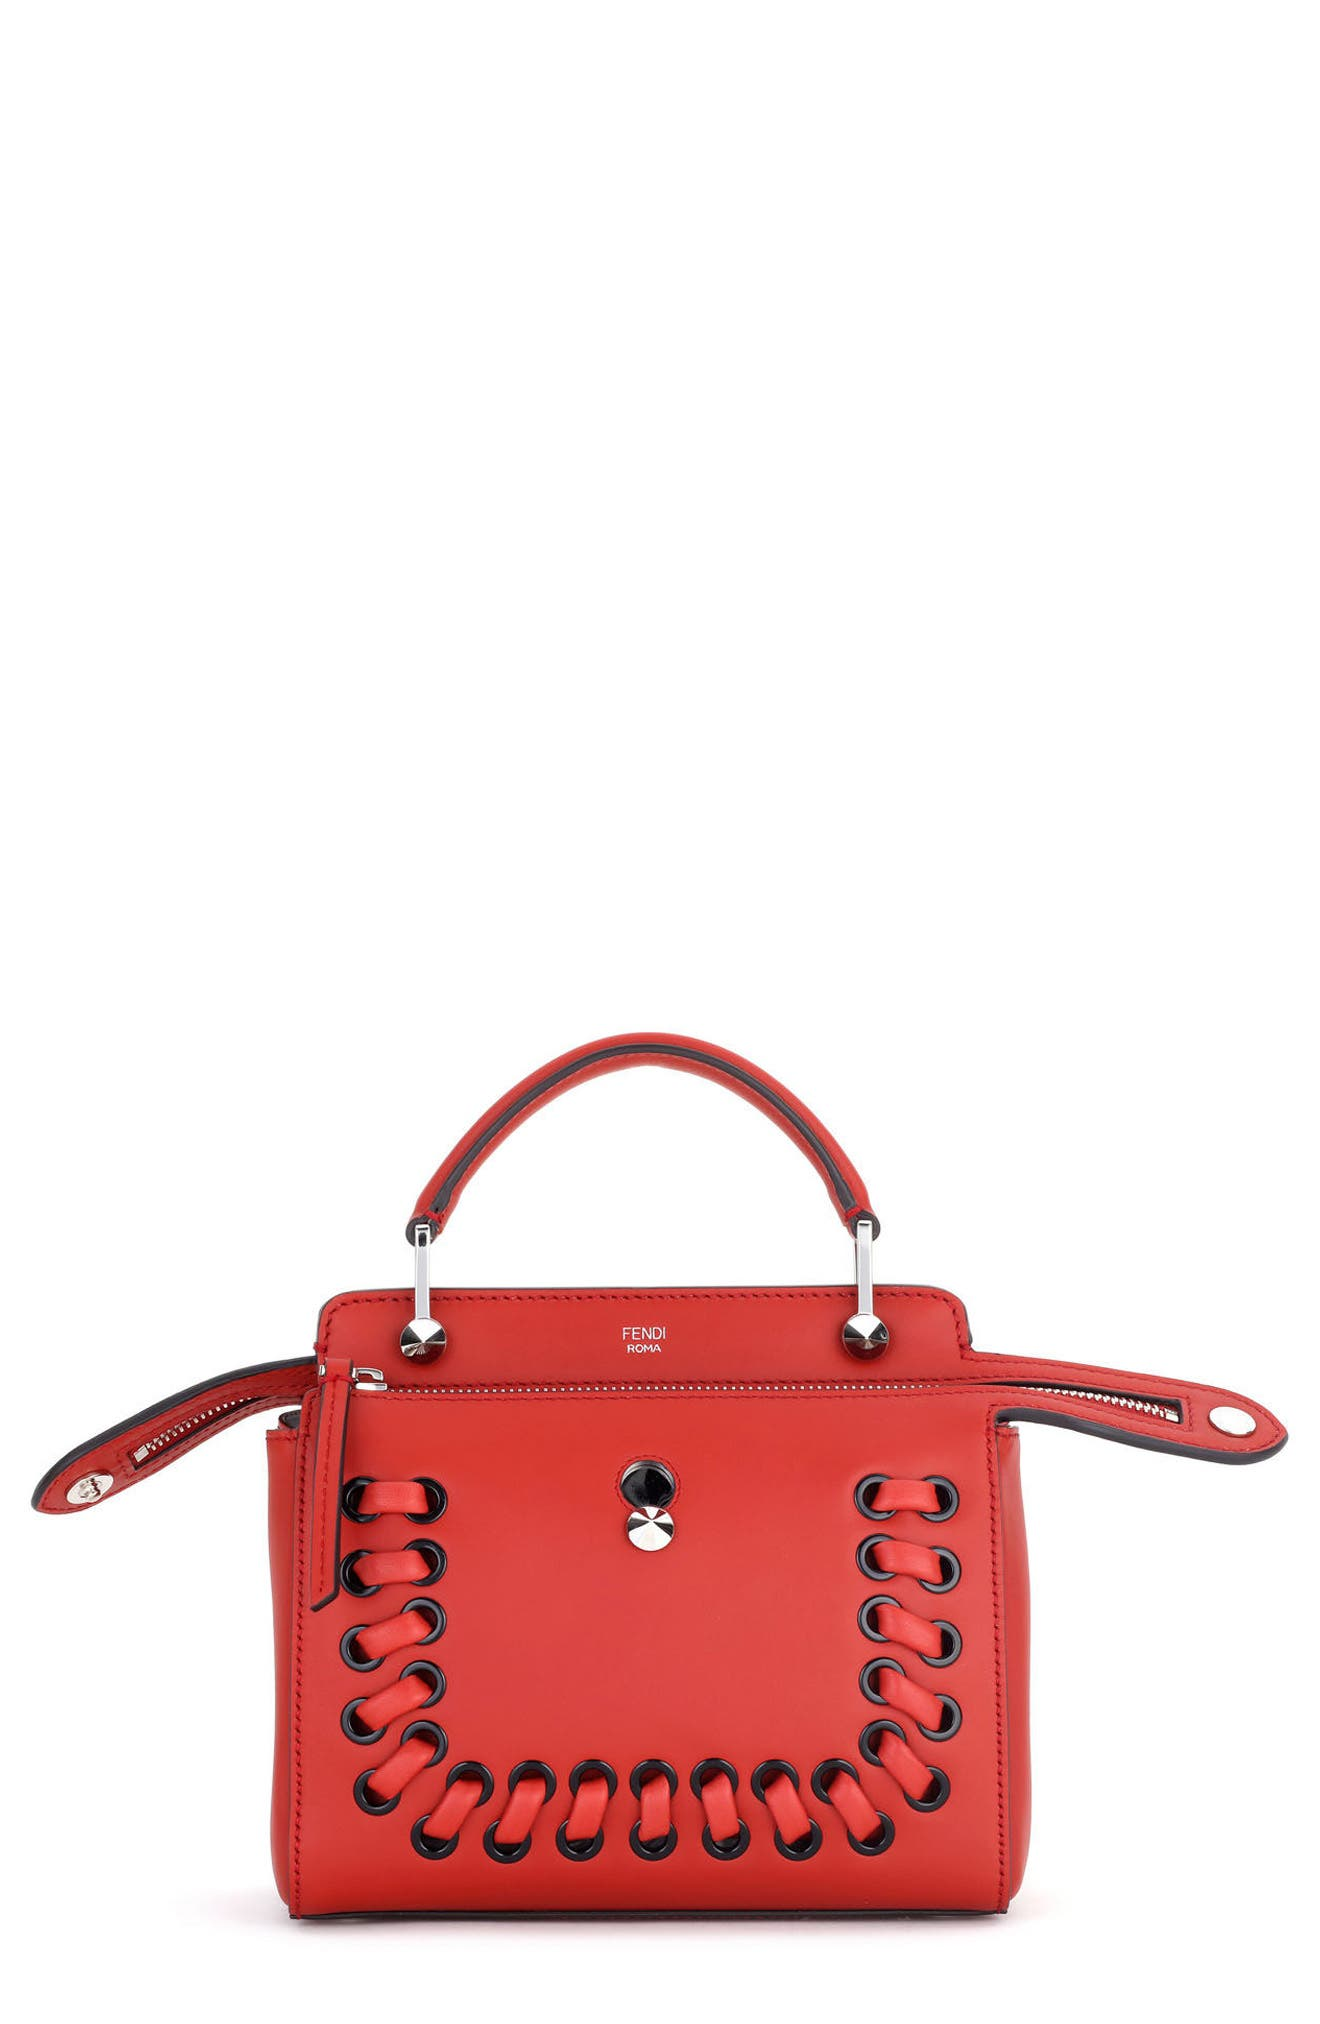 Alternate Image 1 Selected - Fendi Dotcom Click Lace-Up Leather Satchel